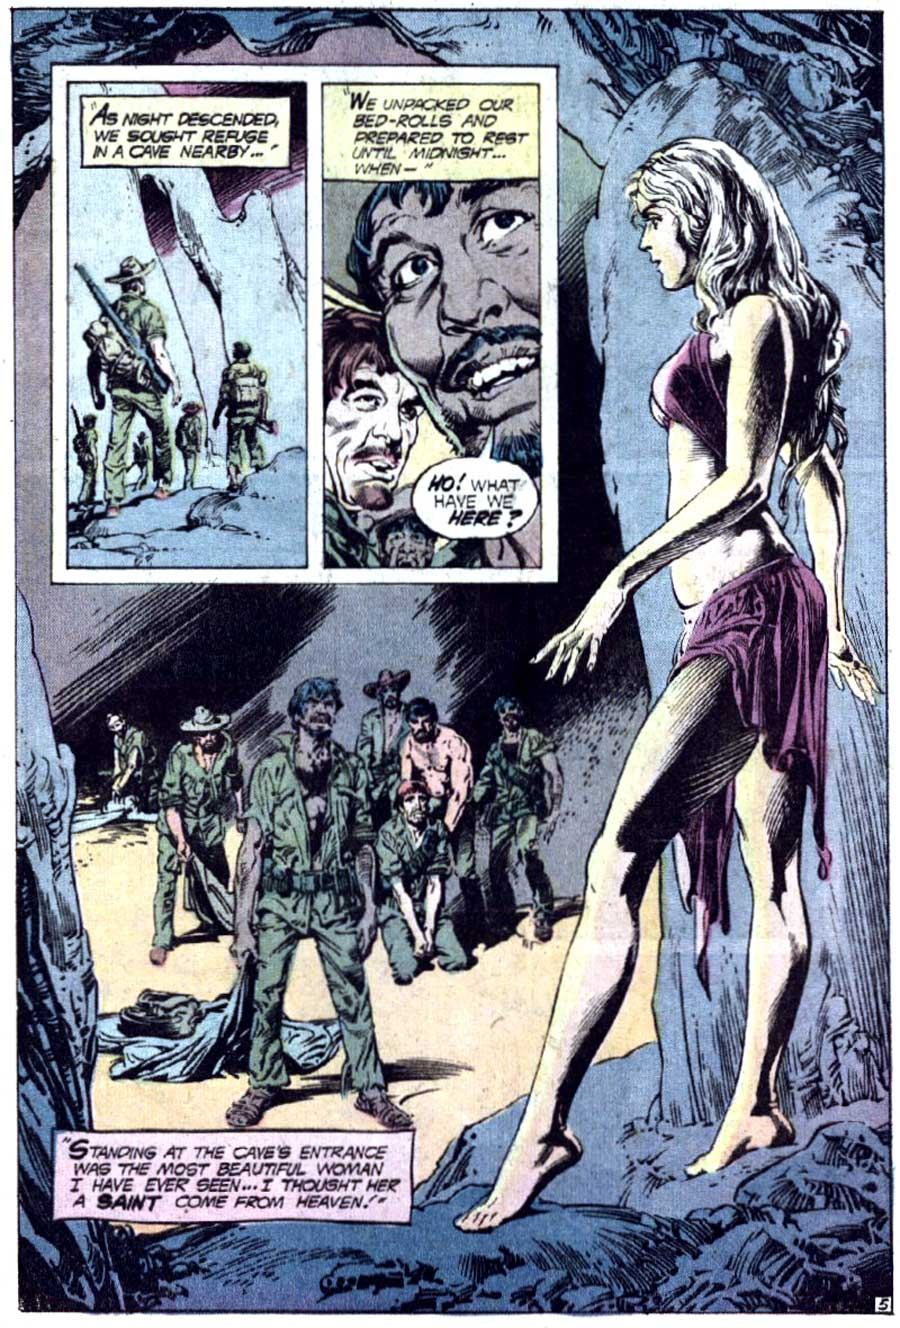 Rima the Jungle Girl v1 #3 dc bronze age comic book page art by Nestor Redondo